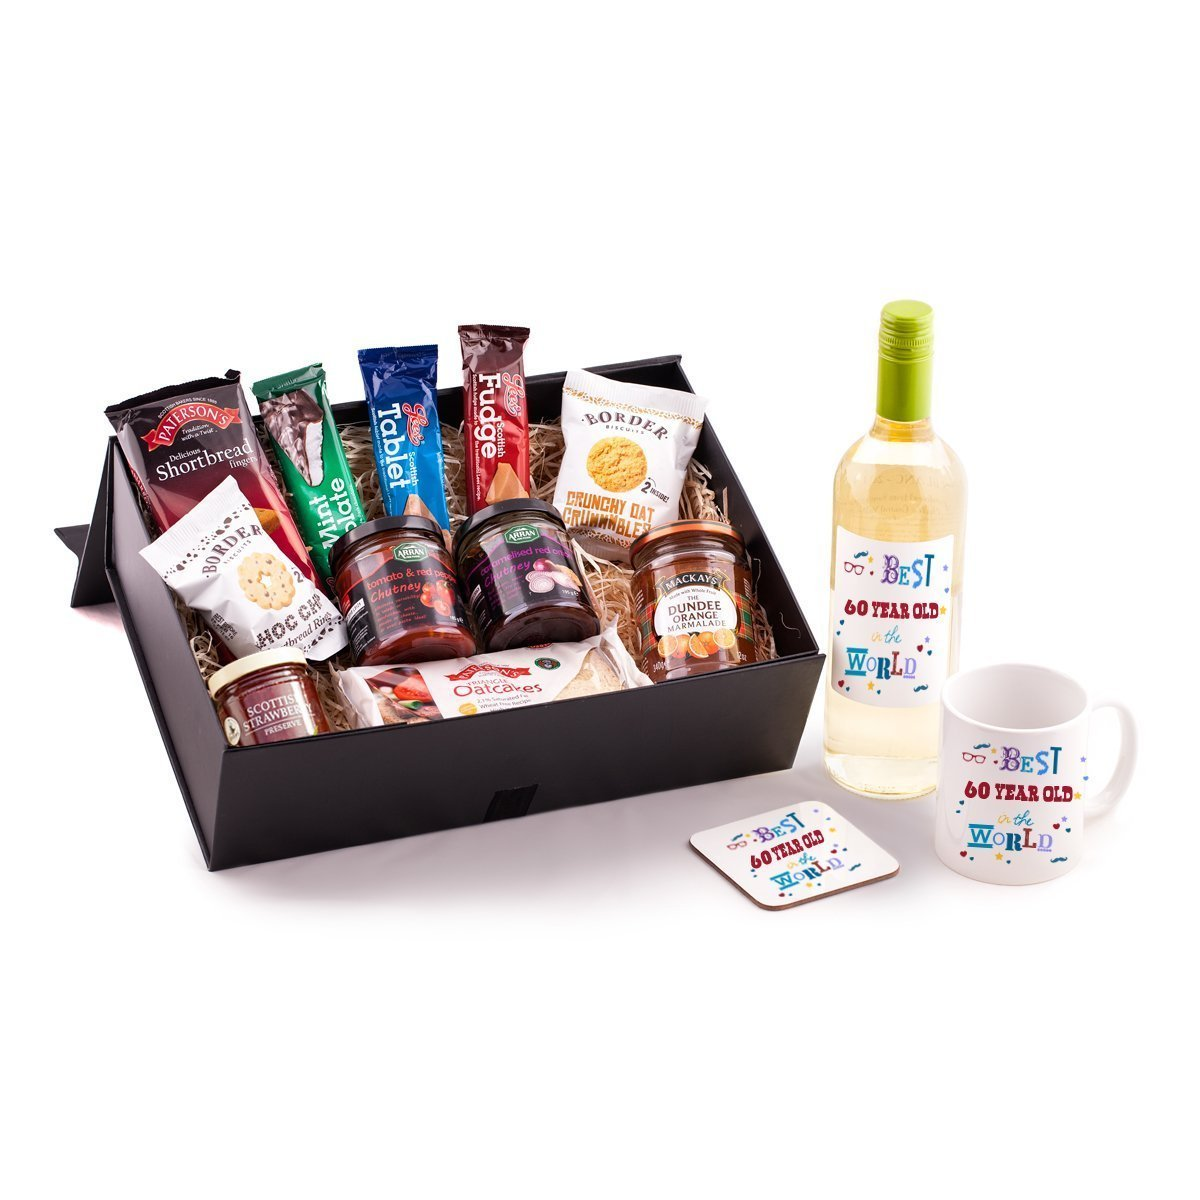 60 Year Old Birthday Hamper - Unique gift idea for any 60th ...